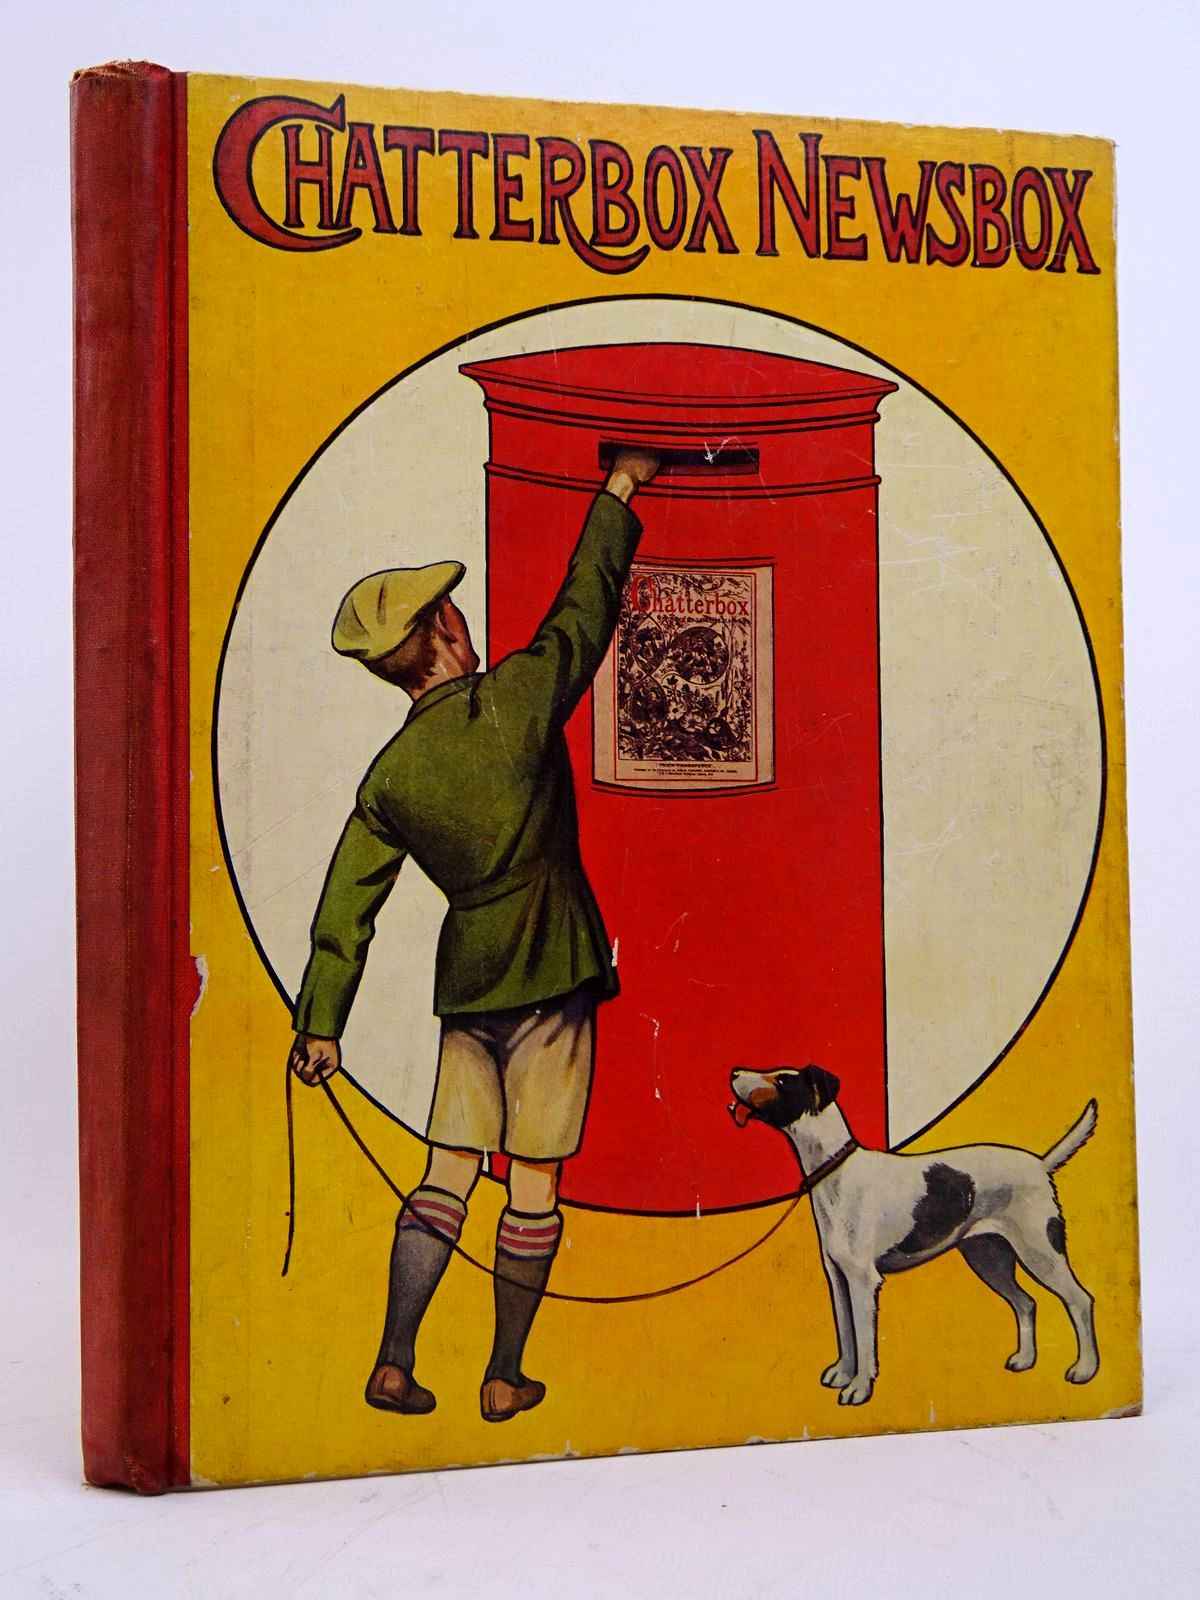 Photo of CHATTERBOX NEWSBOX published by Wells Gardner, Darton & Co. Ltd. (STOCK CODE: 1817637)  for sale by Stella & Rose's Books